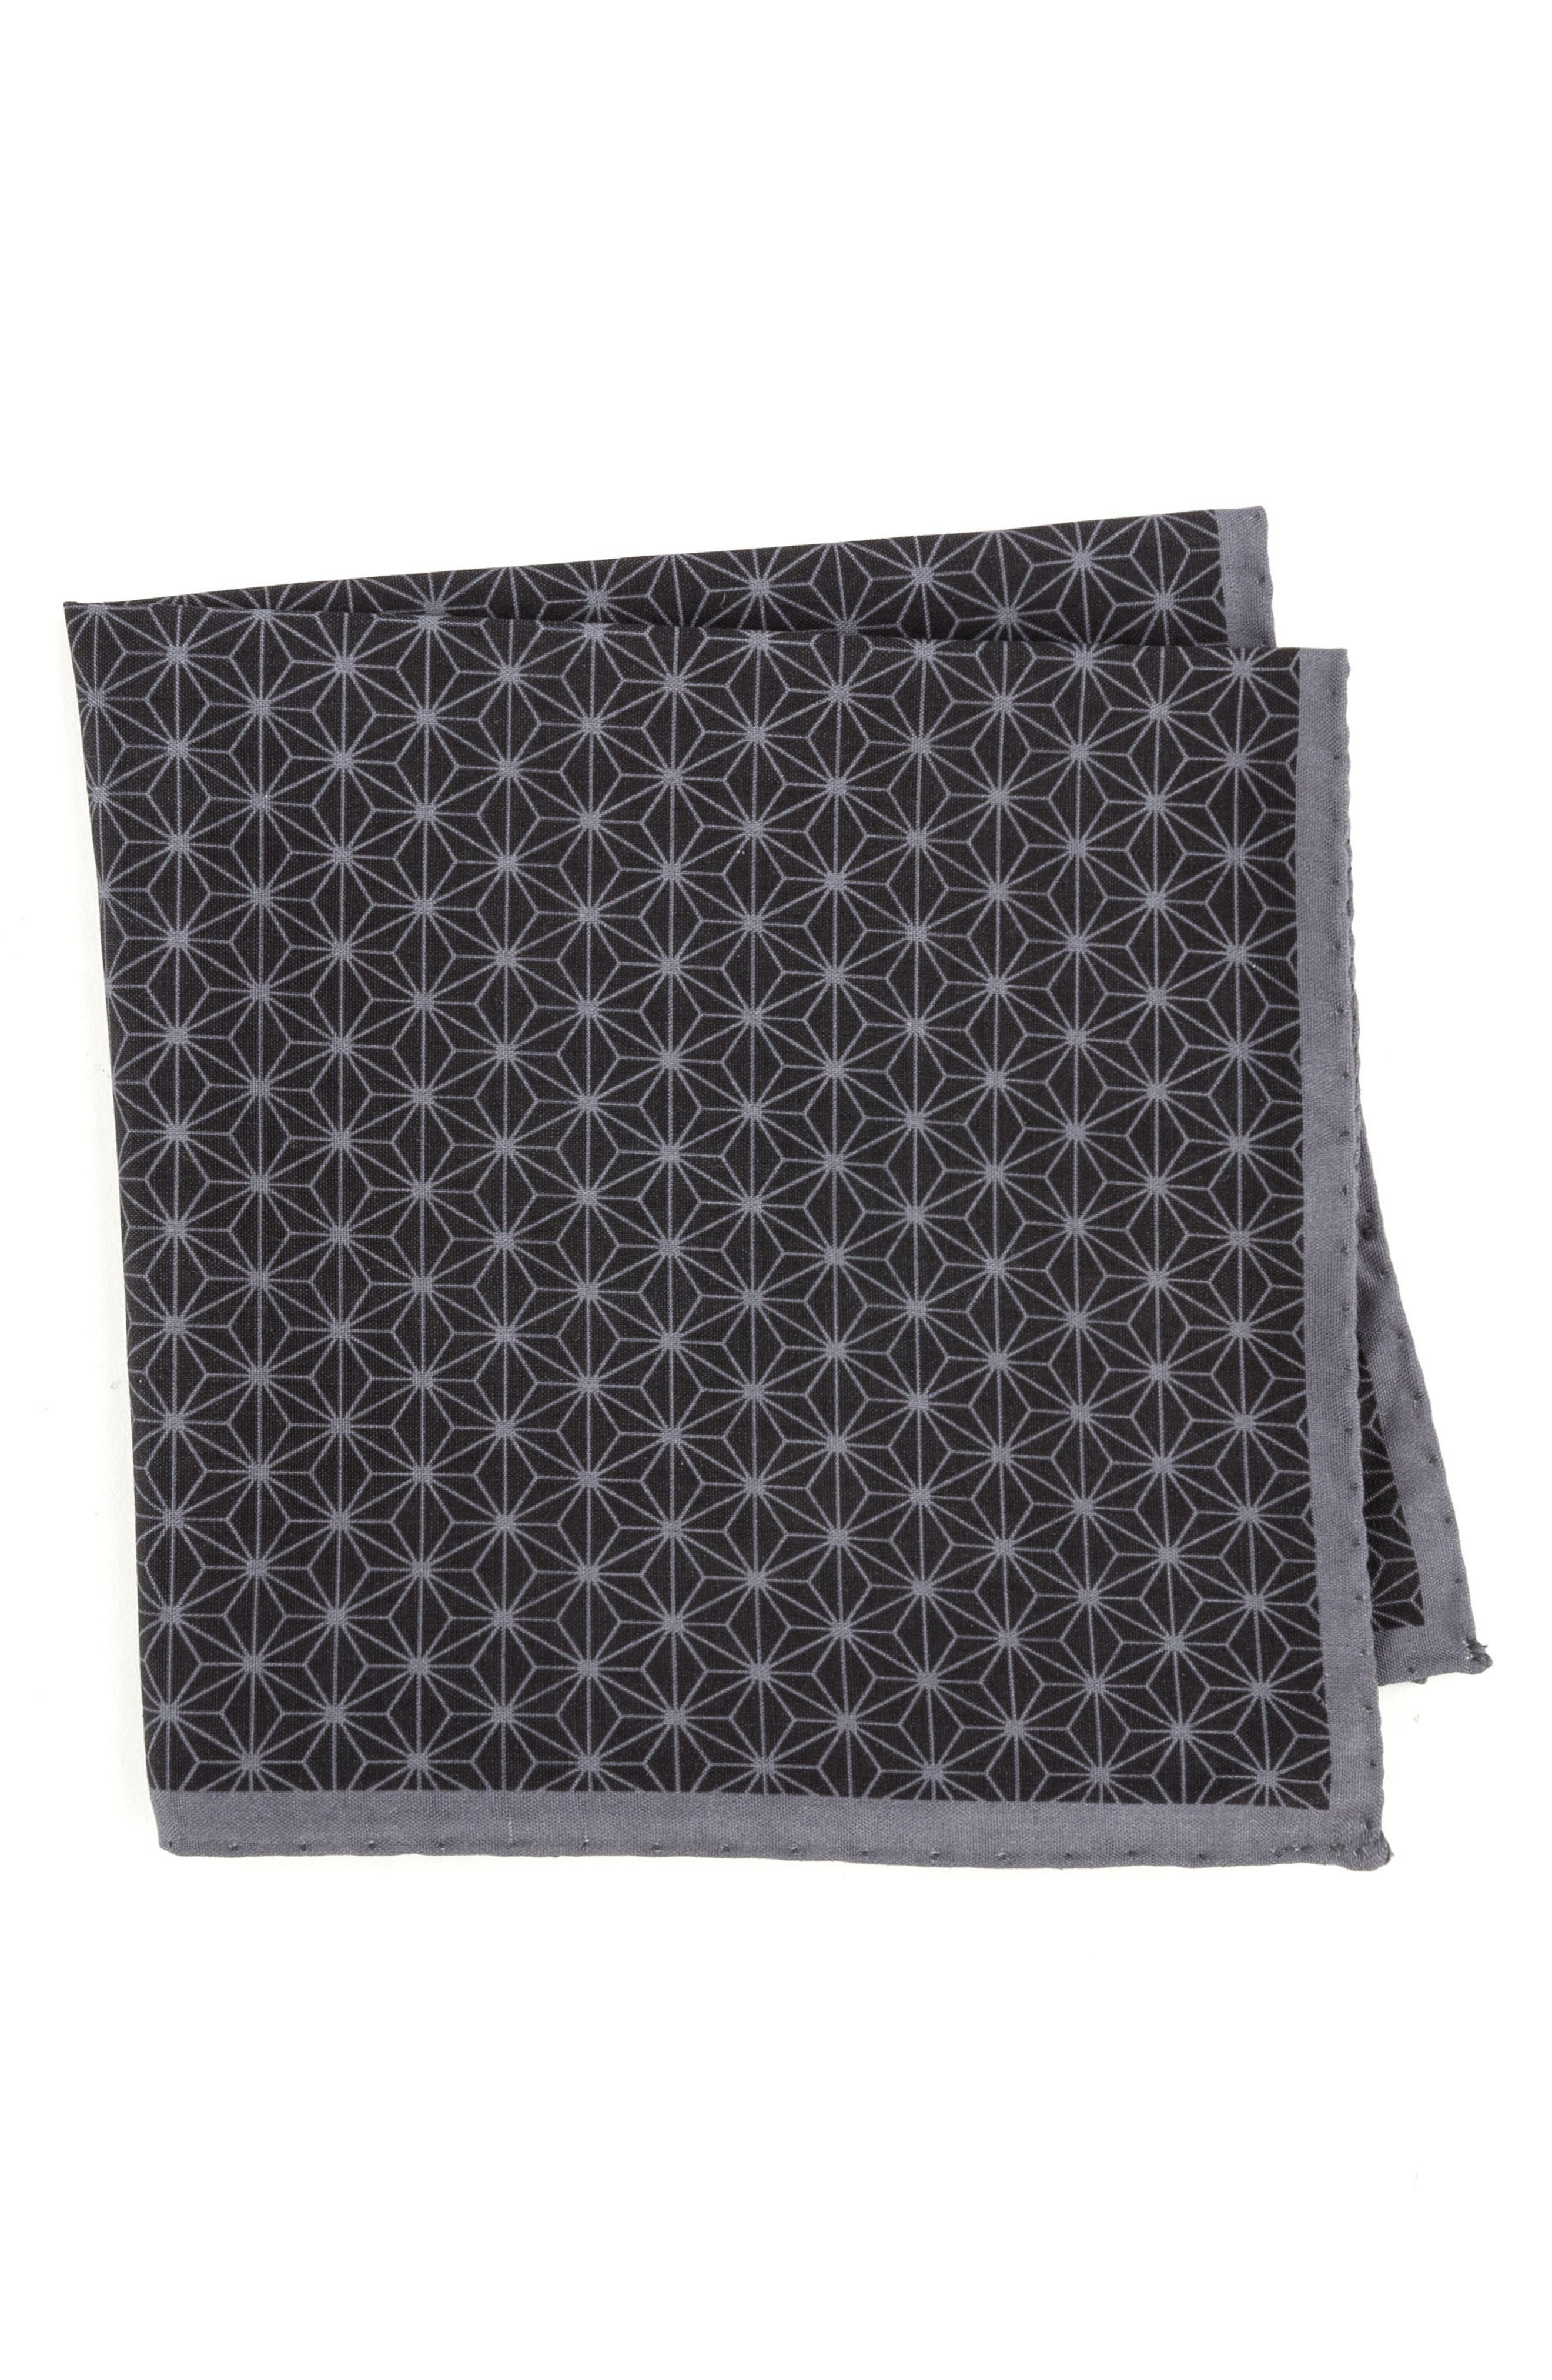 Starburst Geometric Silk Pocket Square,                         Main,                         color, 001